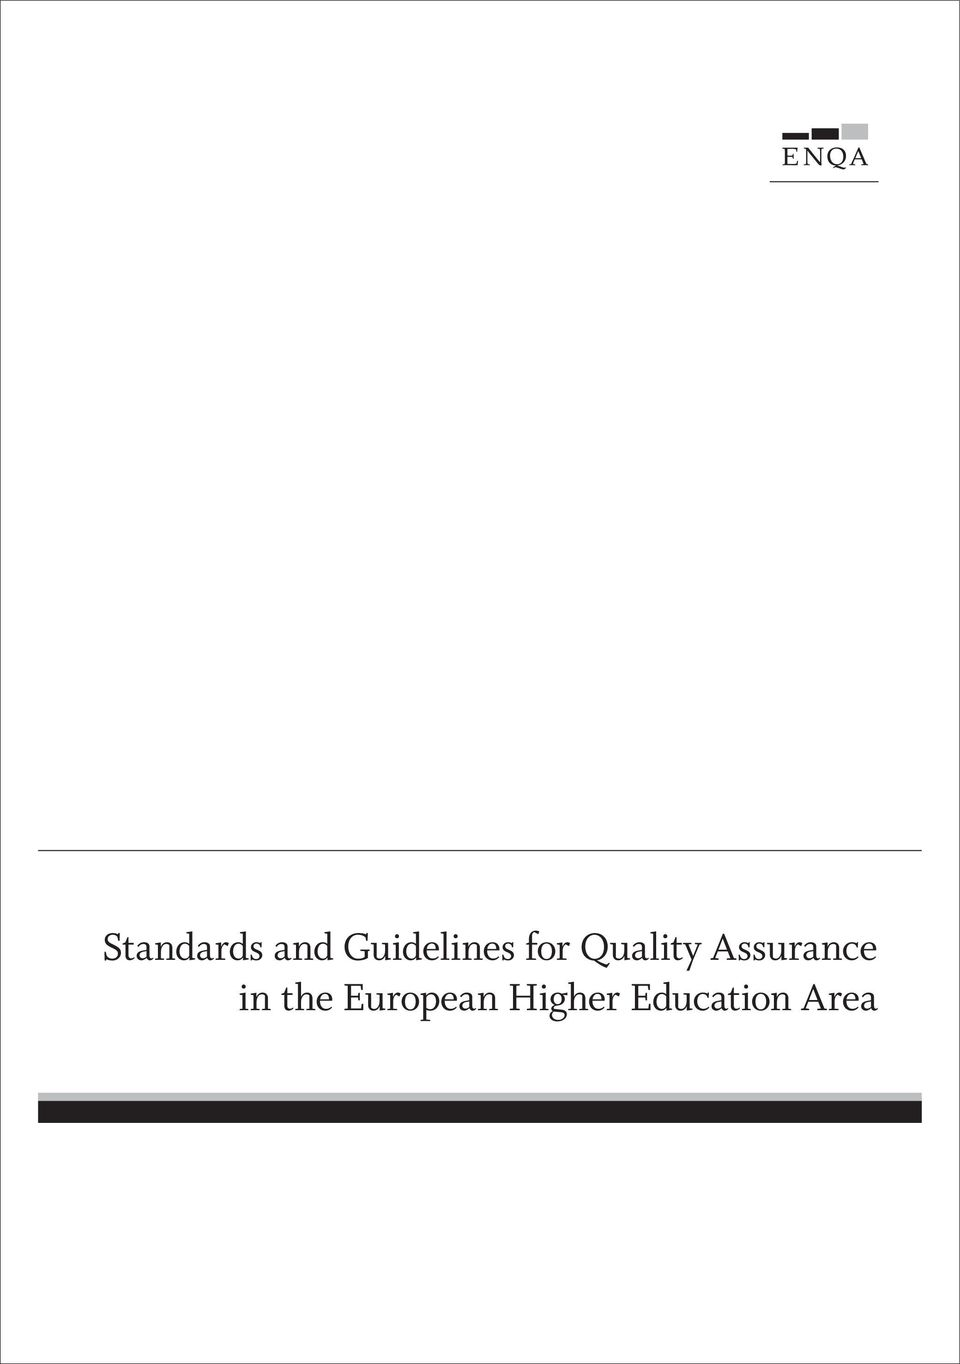 Quality Assurance in